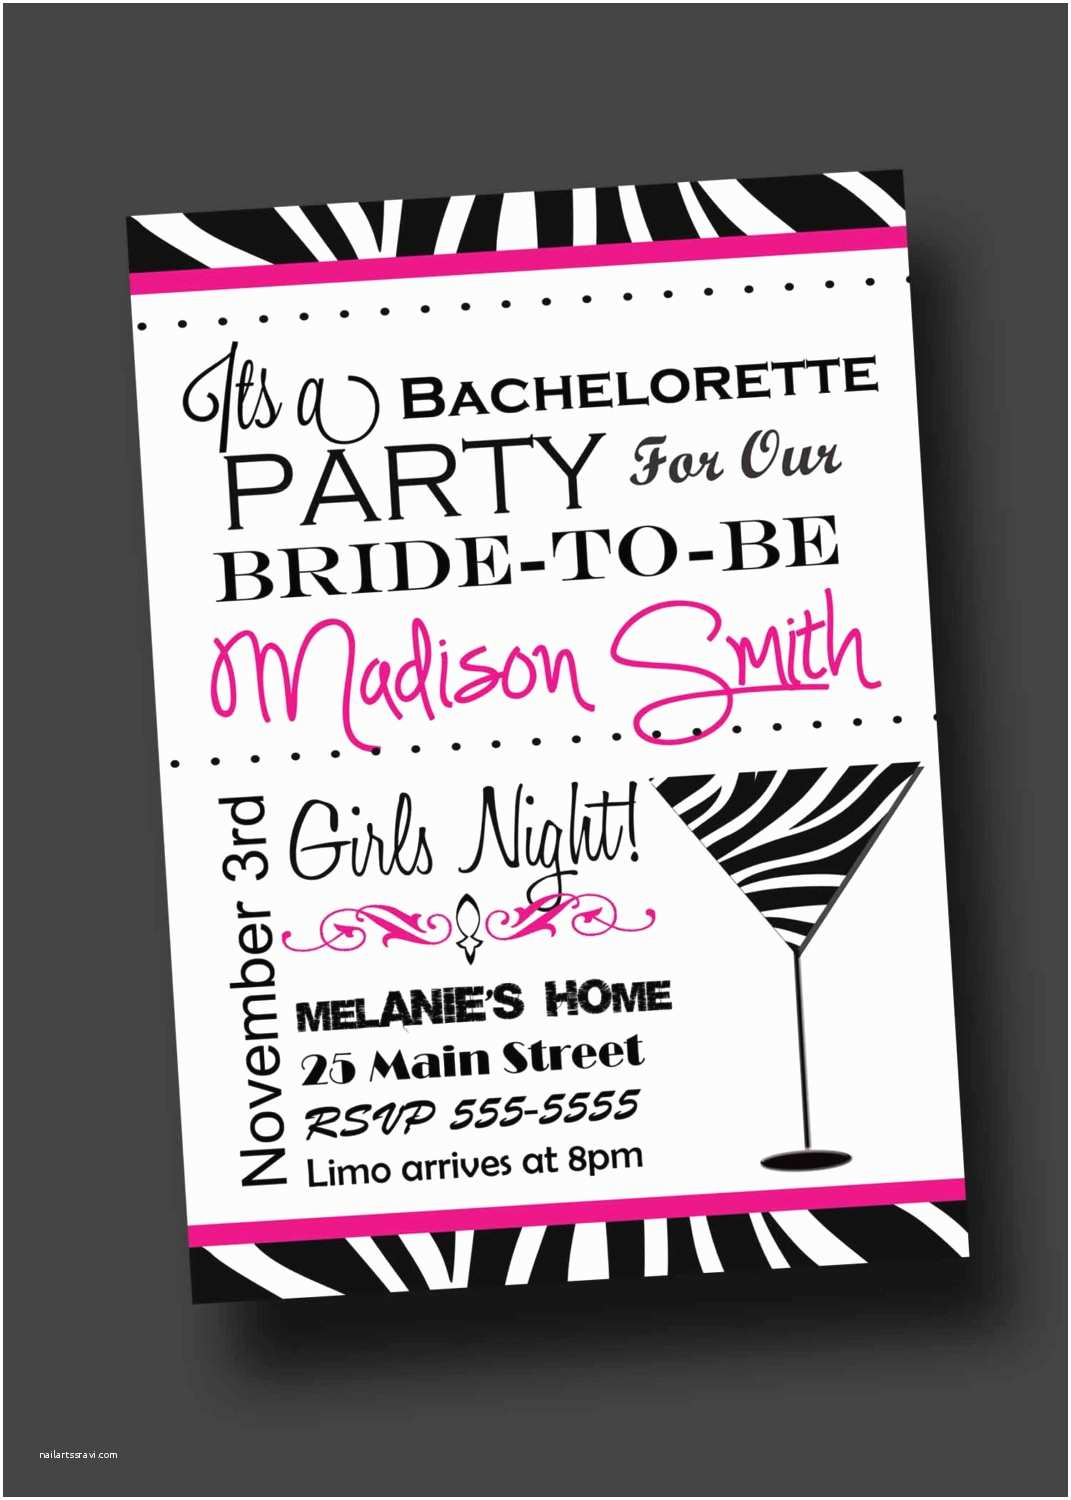 Free Bachelorette Party Invitations Tips for Choosing Bachelorette Party Invitation Wording